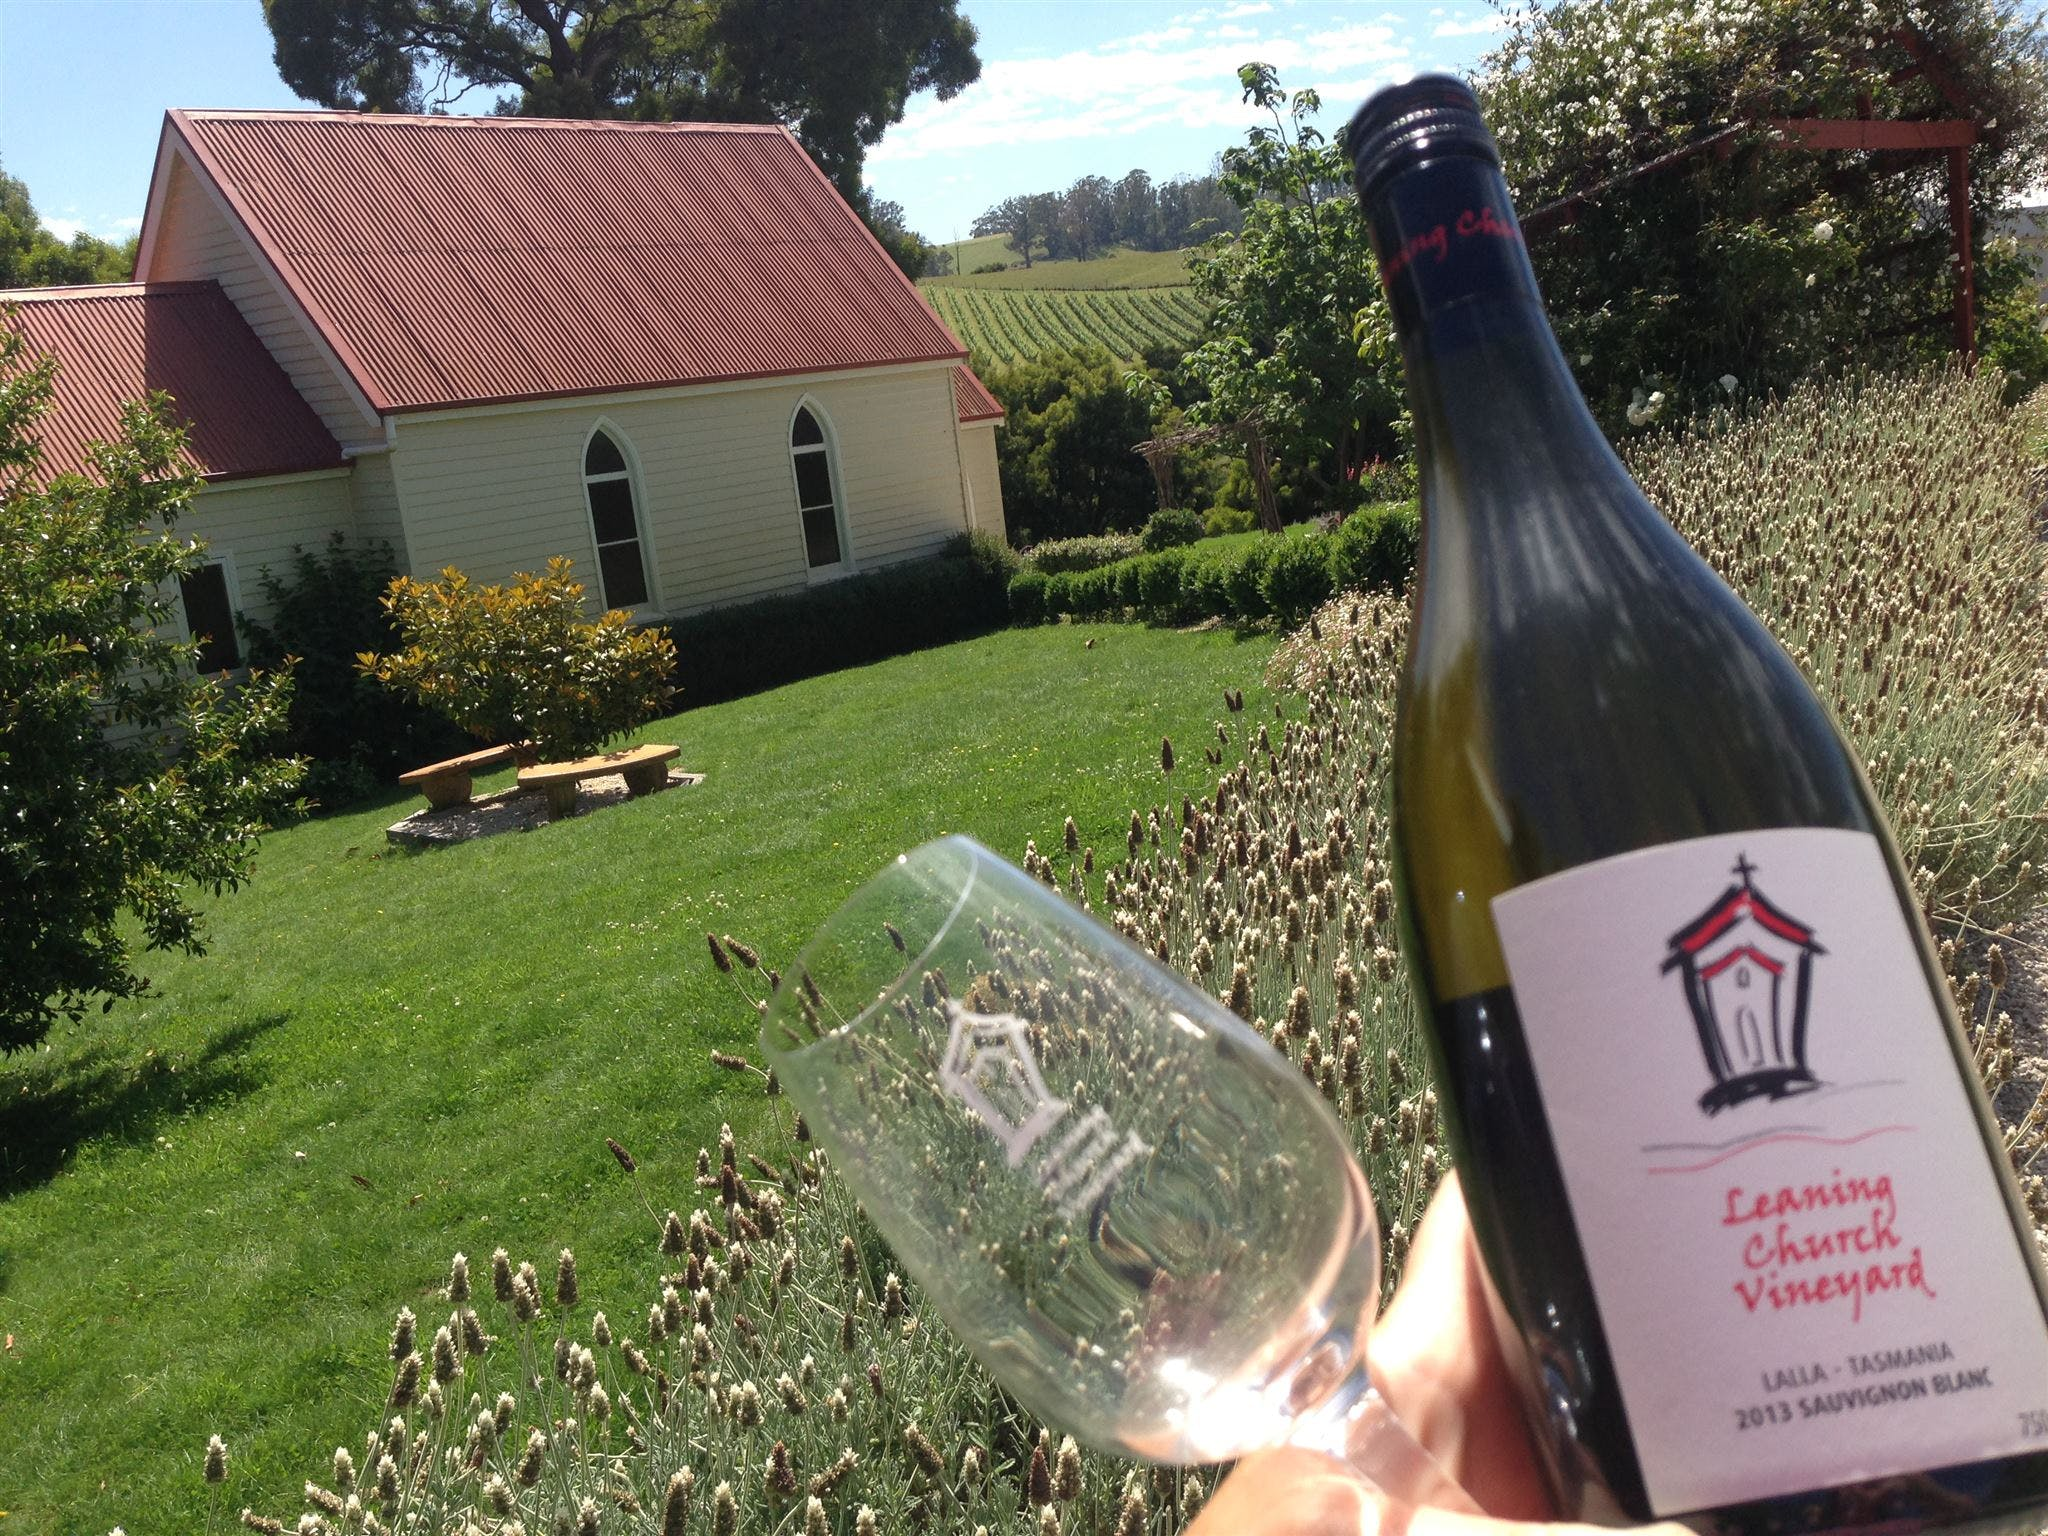 Leaning Church Vineyard - Victoria Tourism